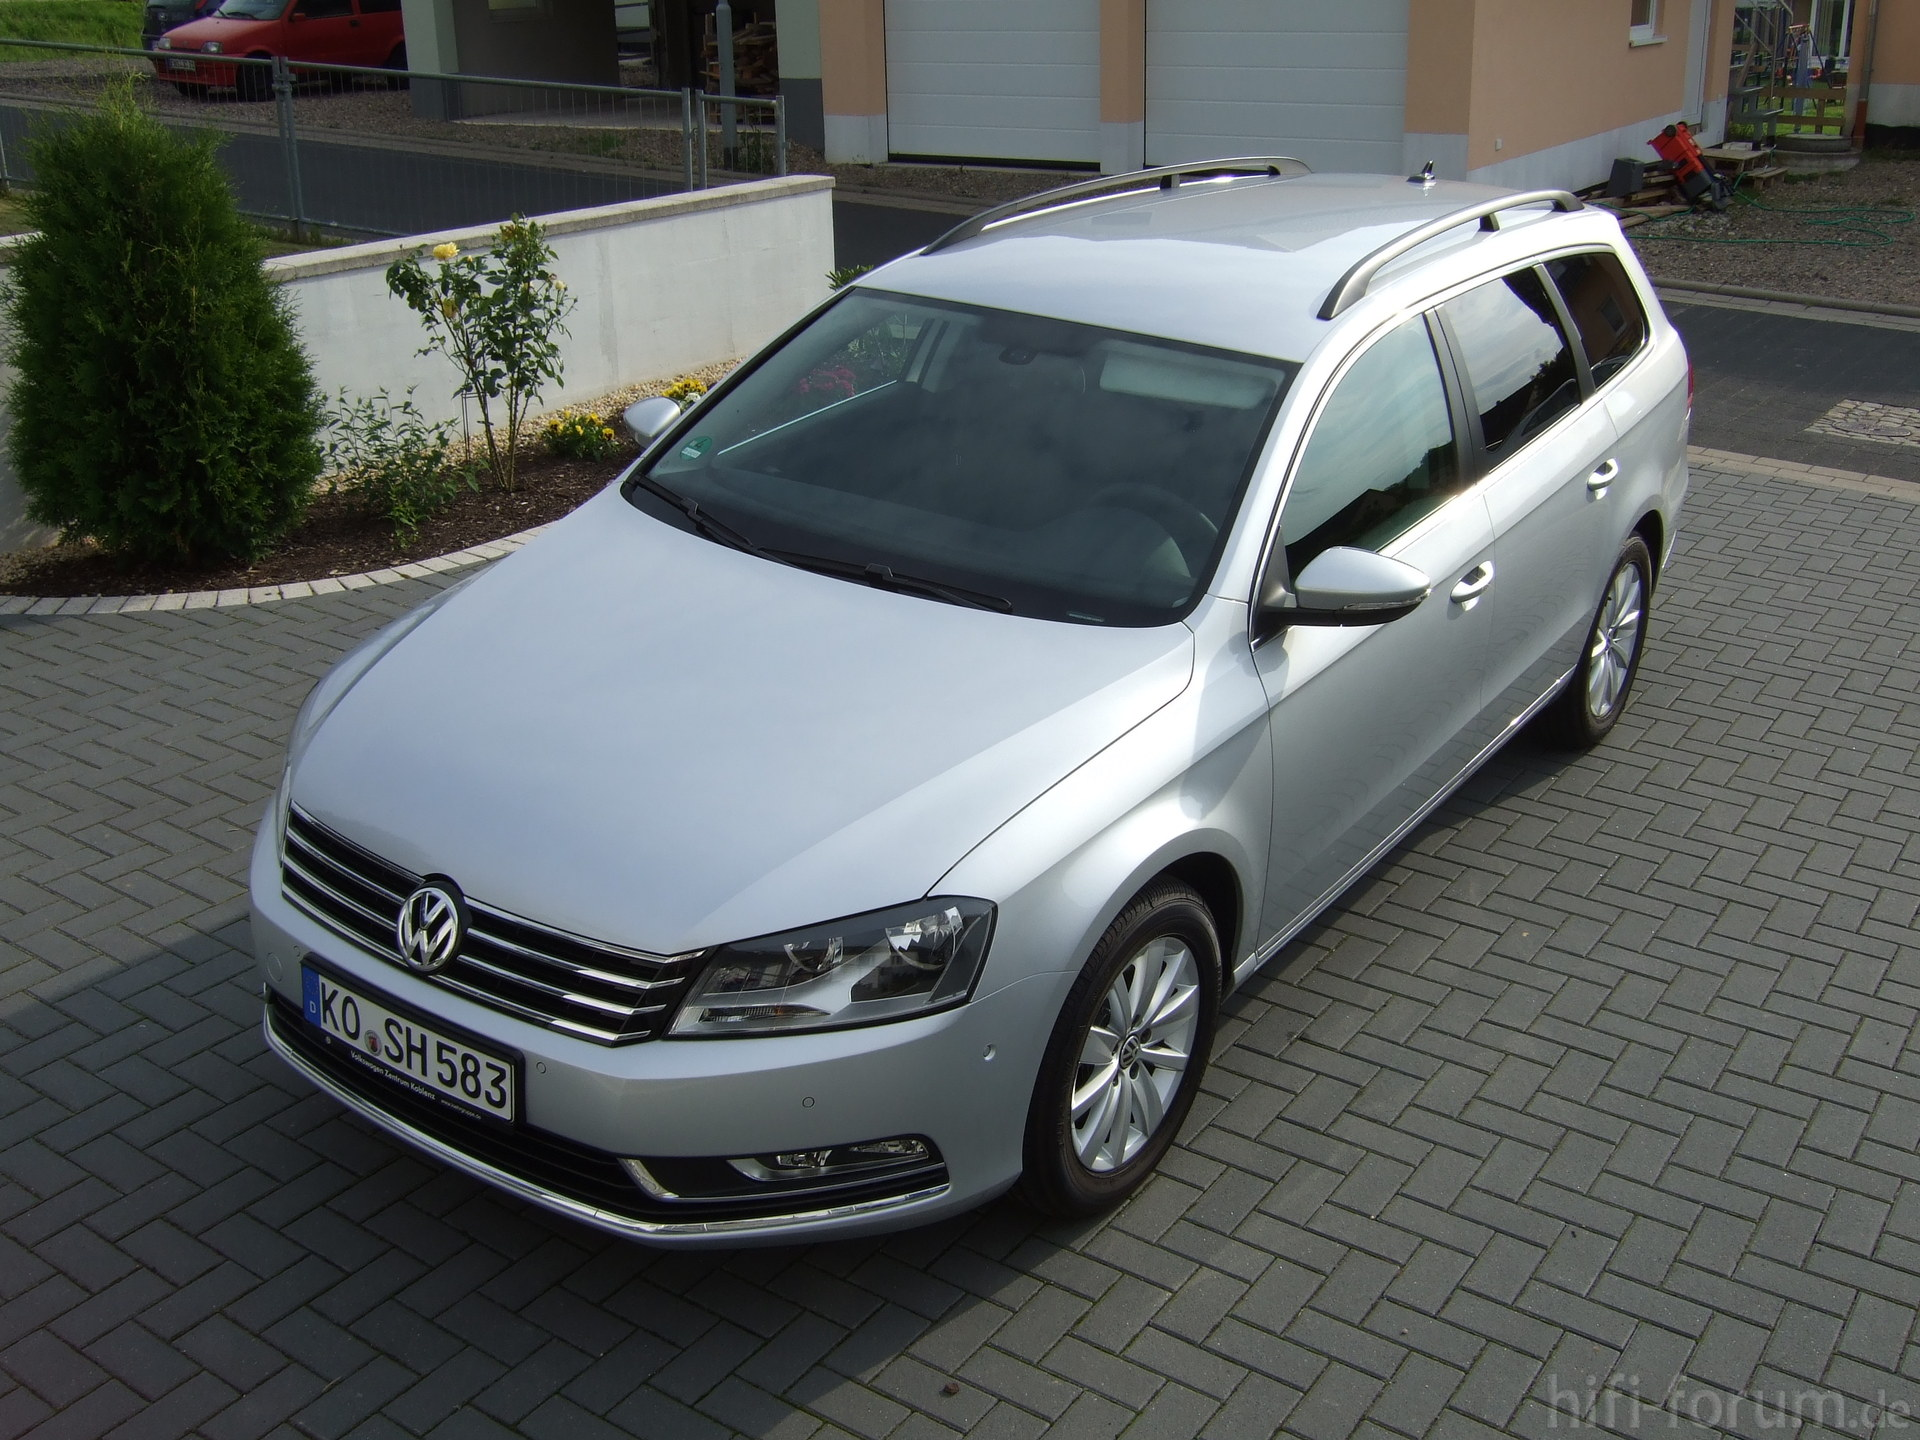 passat b7 variant 2 0 tdi bmt comfort b7 bmt comfort passat tdi variant hifi. Black Bedroom Furniture Sets. Home Design Ideas